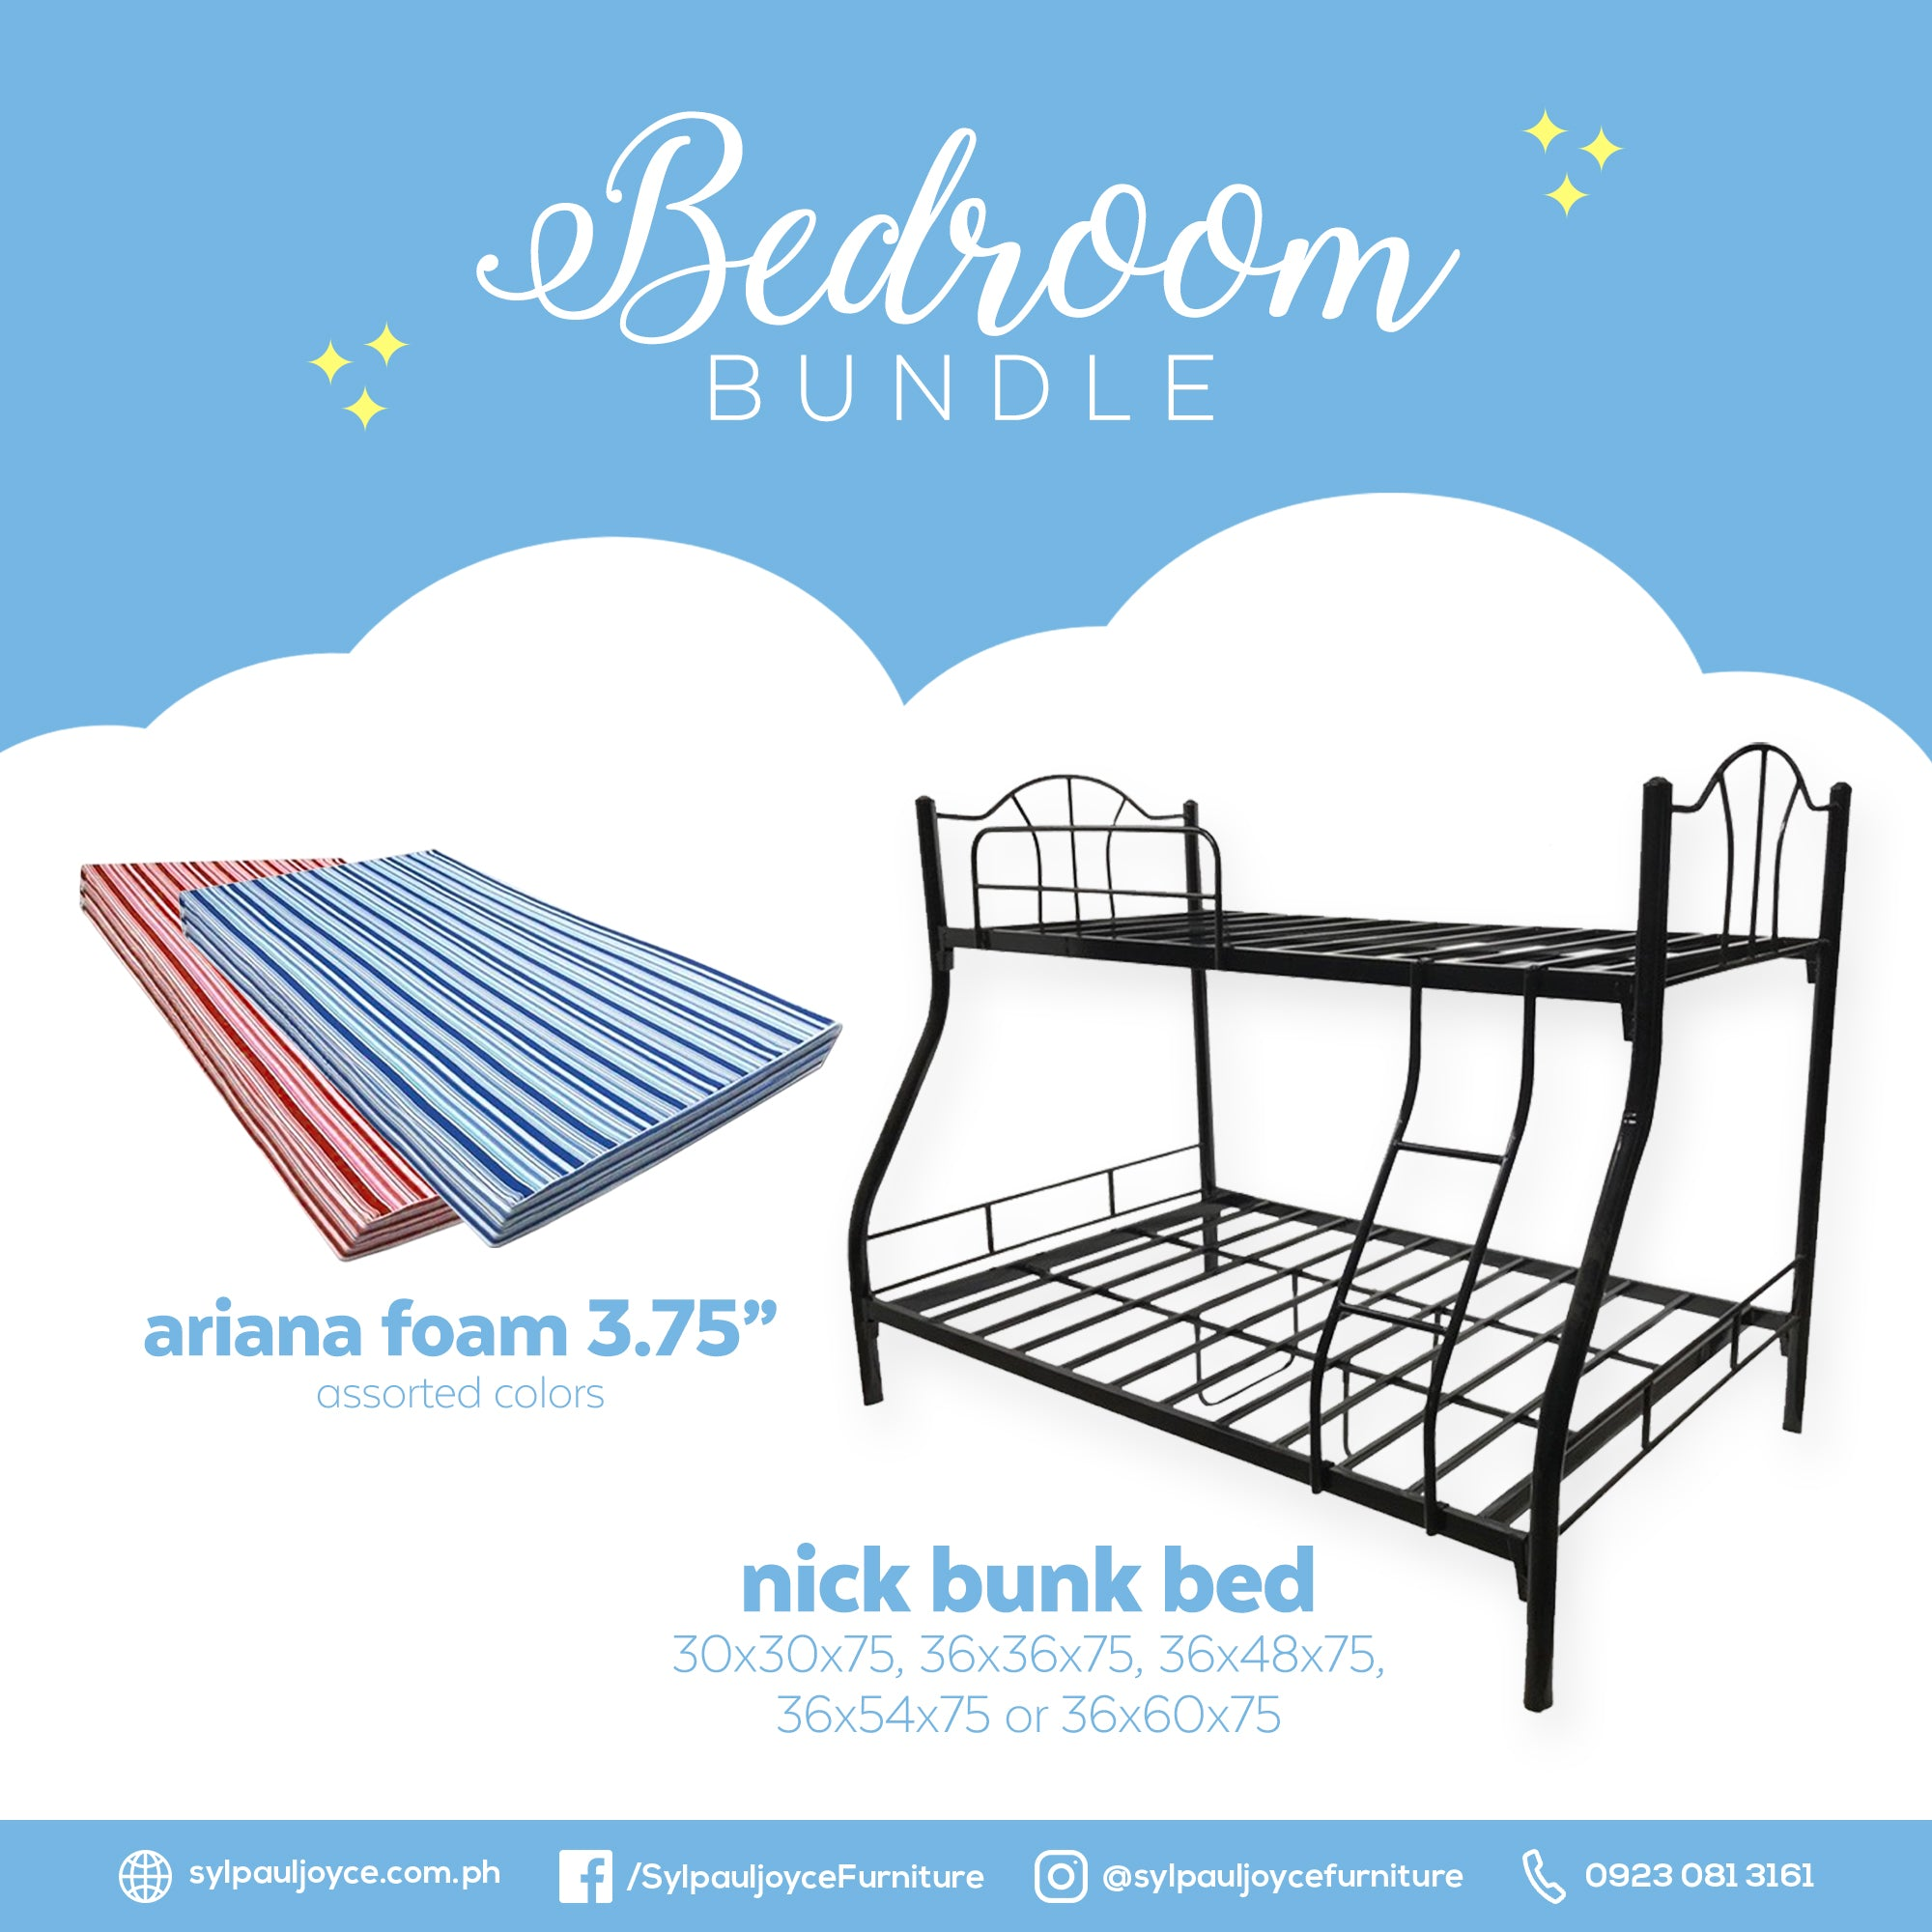 Nick Bunk Bed with Ariana Foam